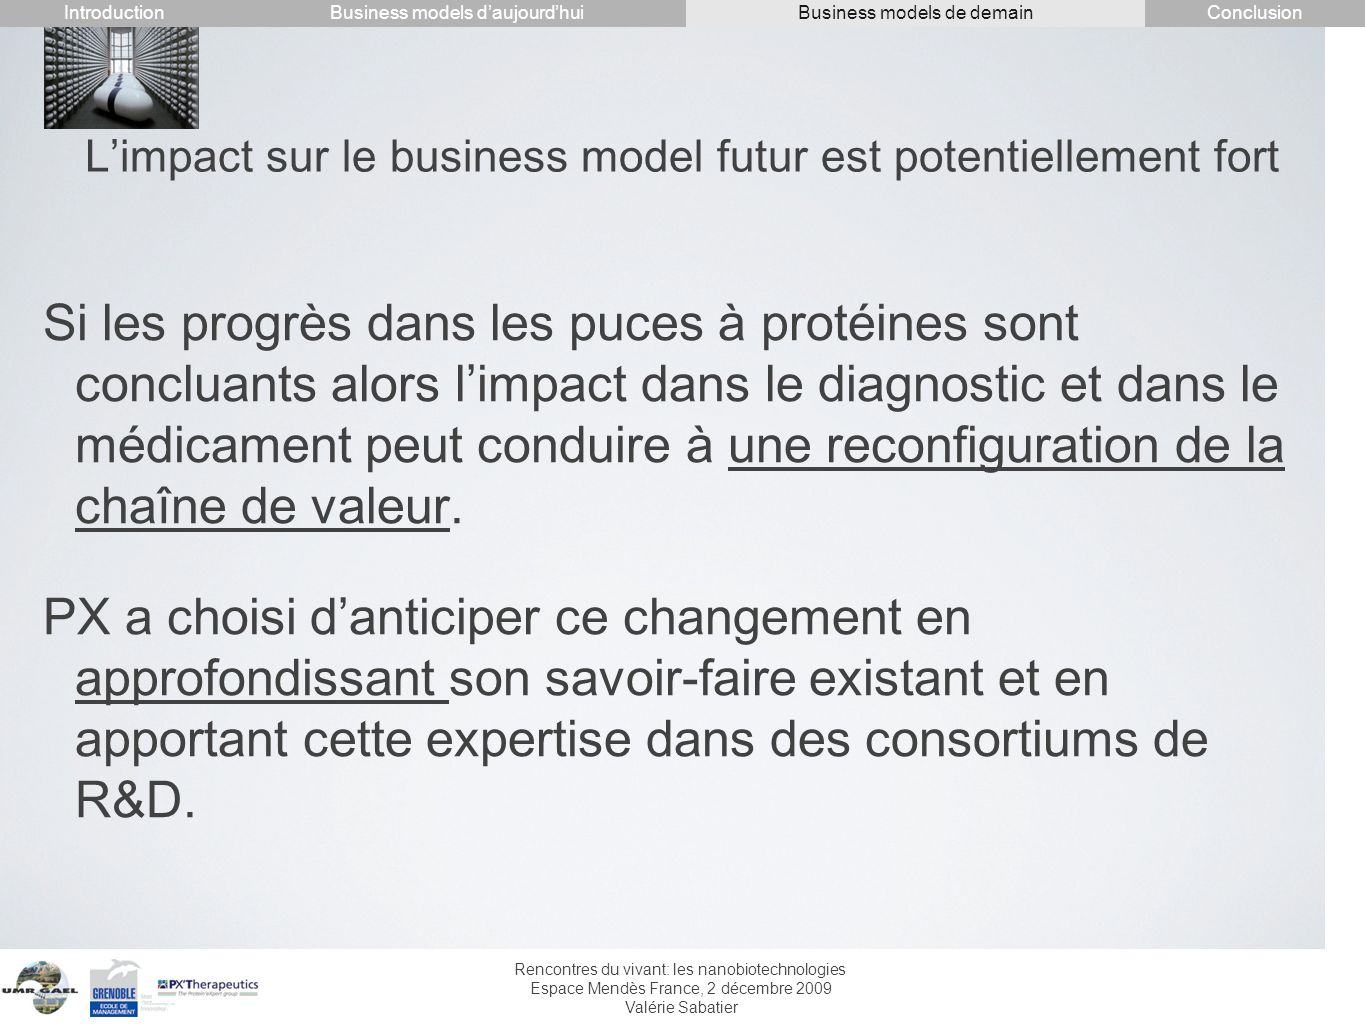 L'impact sur le business model futur est potentiellement fort